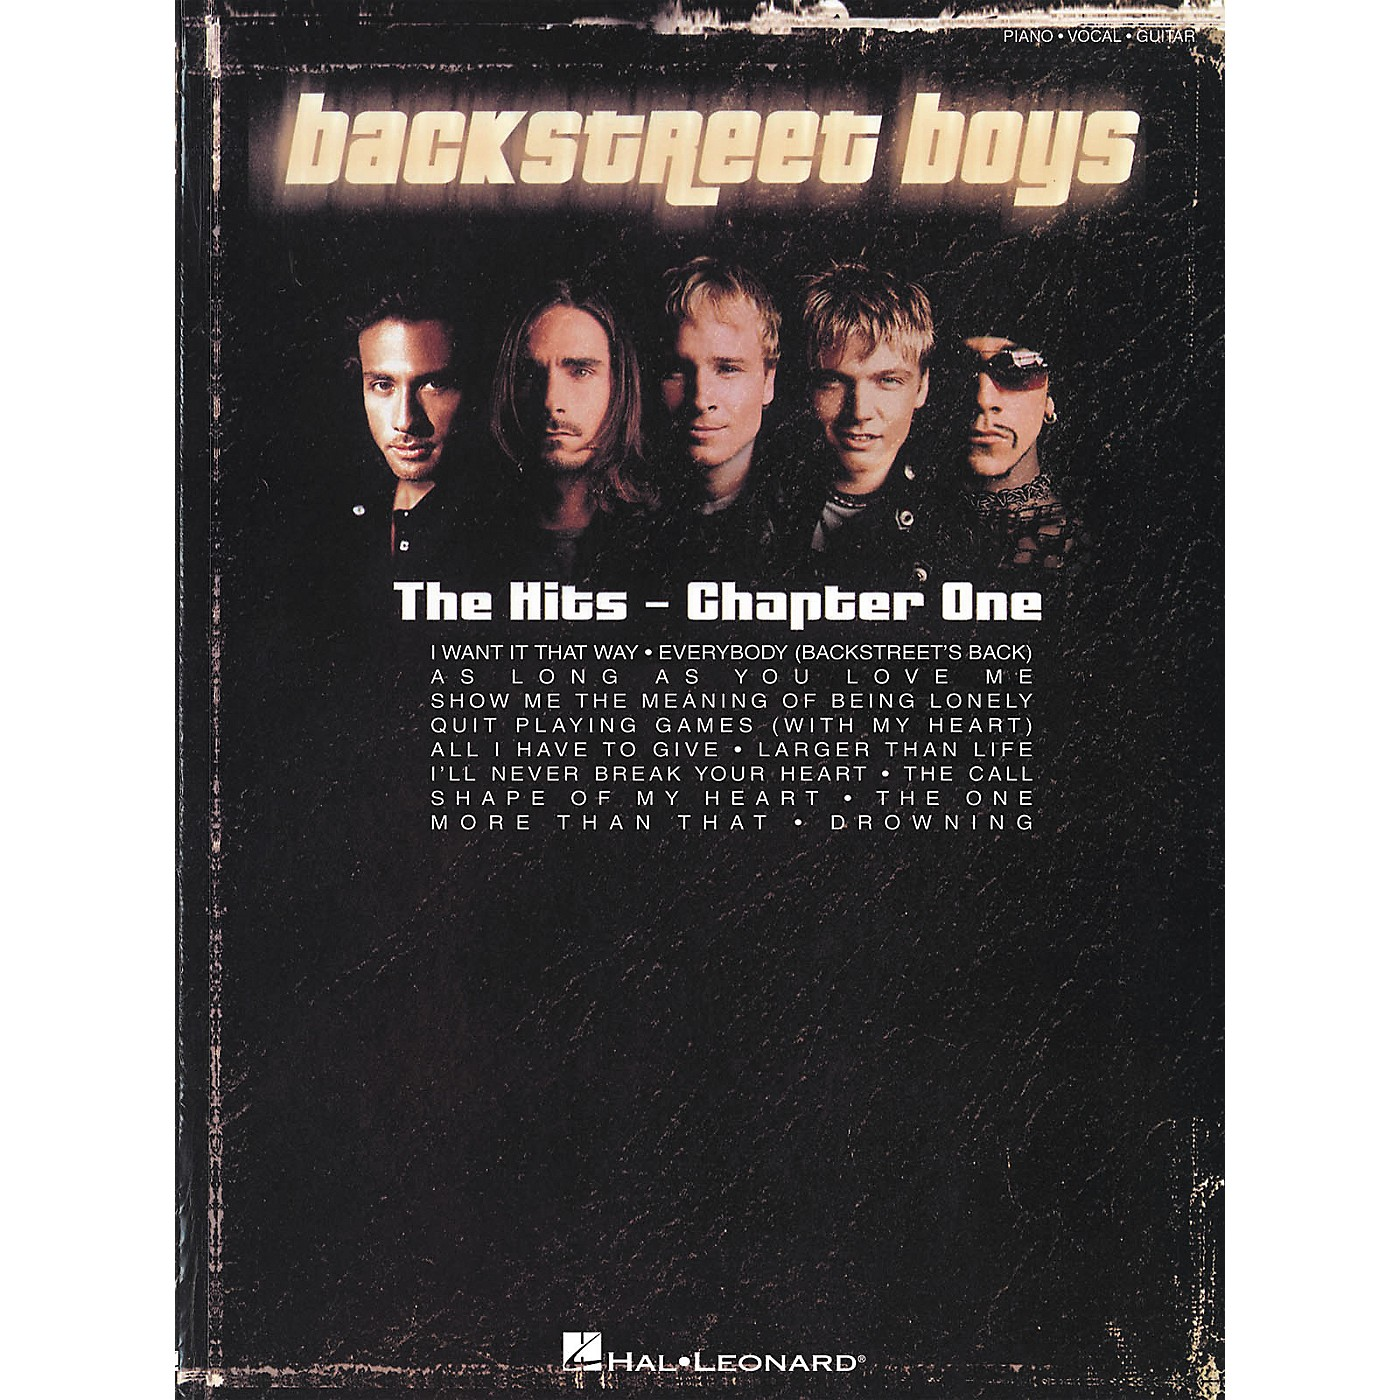 Hal Leonard Backstreet Boys - The Hits Chapter One Piano, Vocal, Guitar Songbook thumbnail